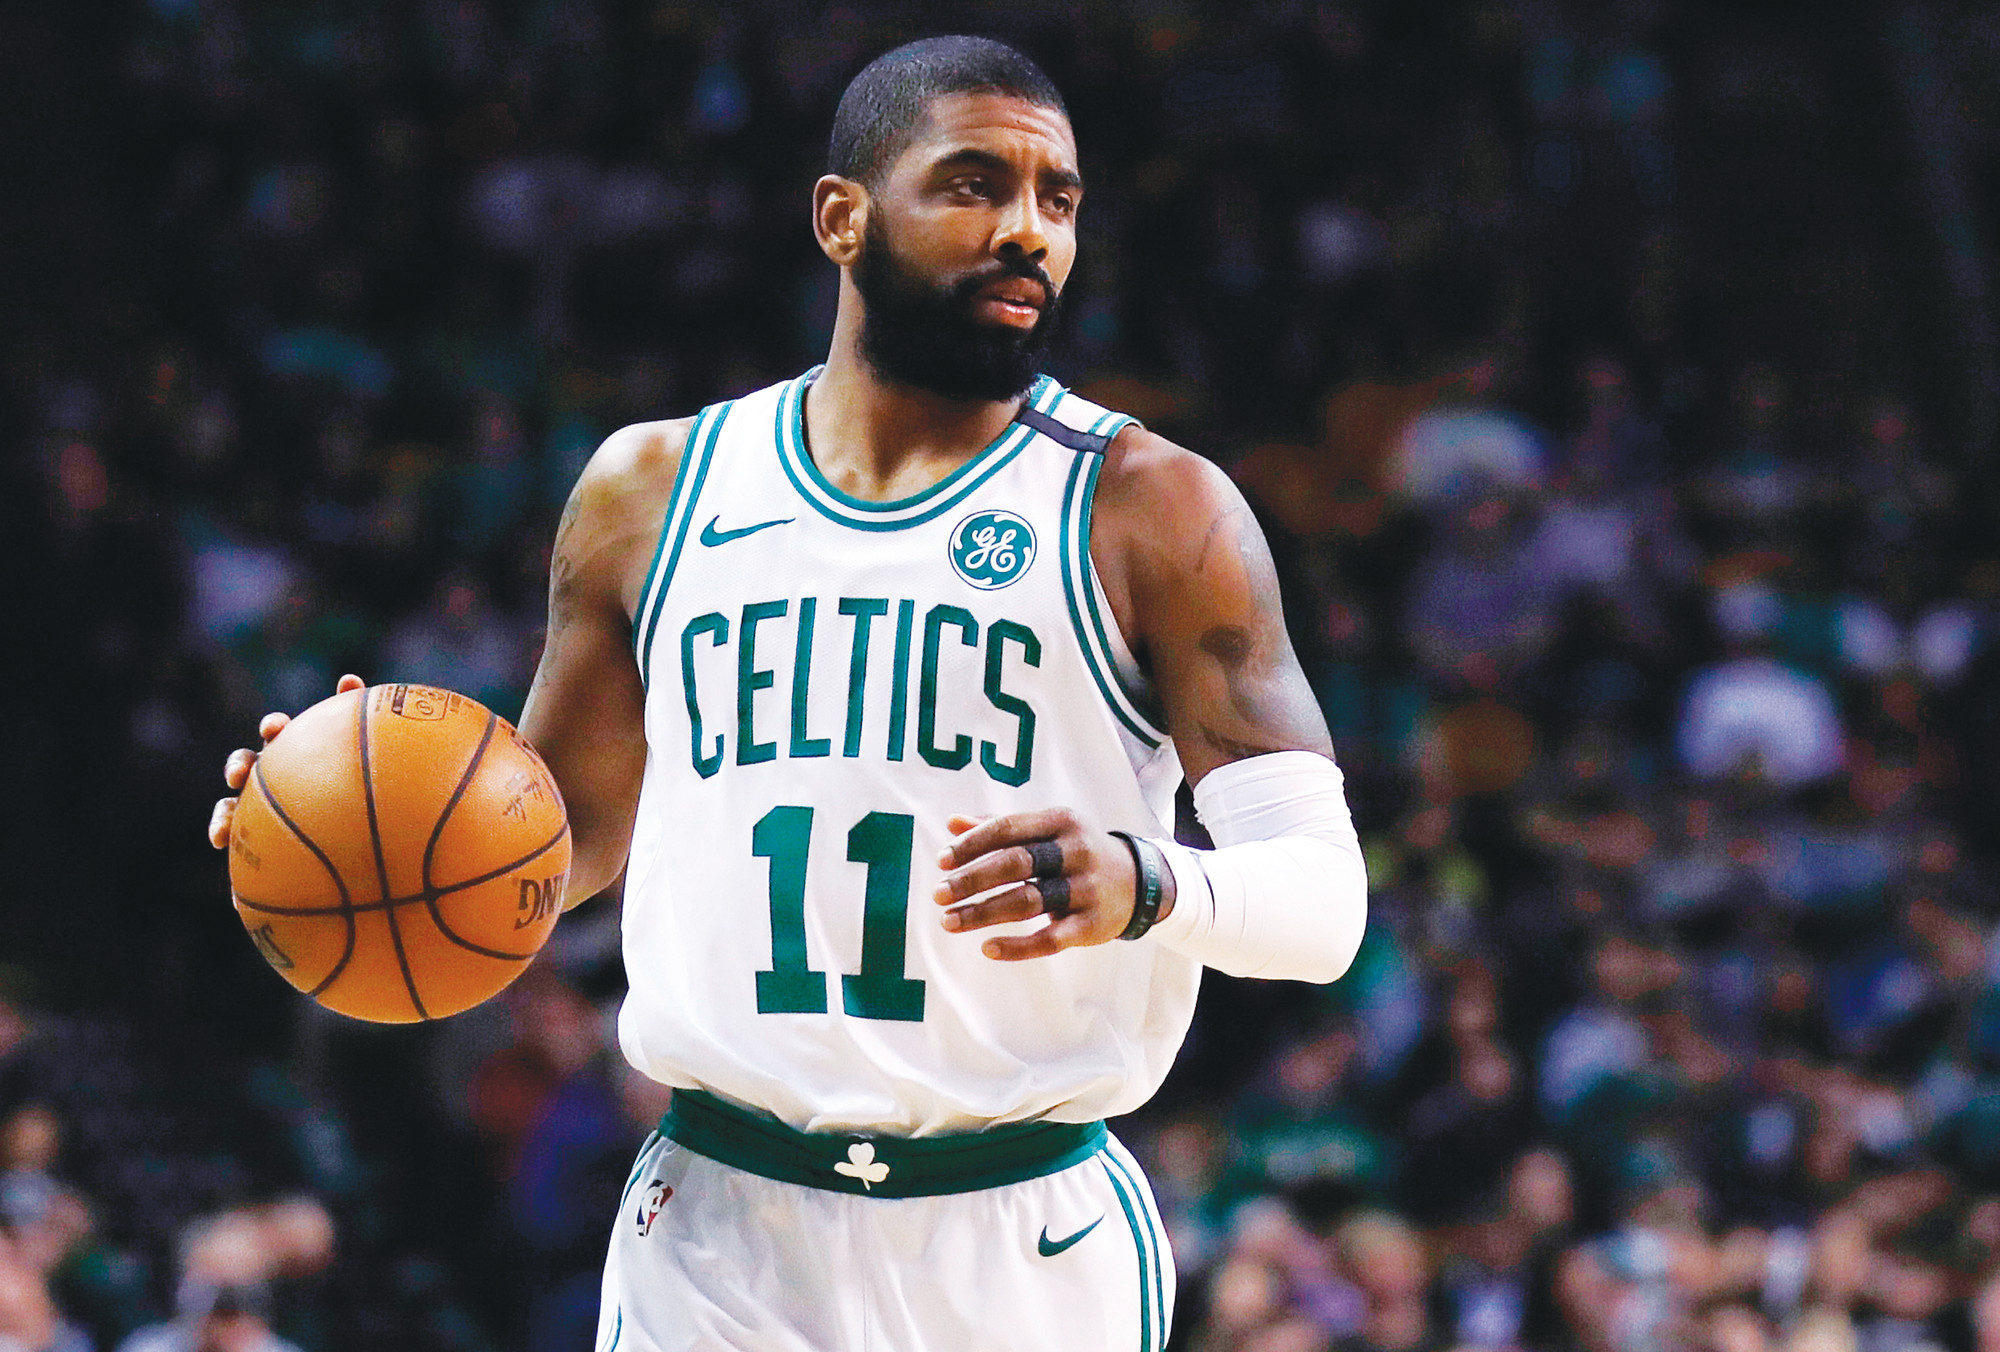 Celtics say Kyrie Irving underwent successful knee surgery Saturday